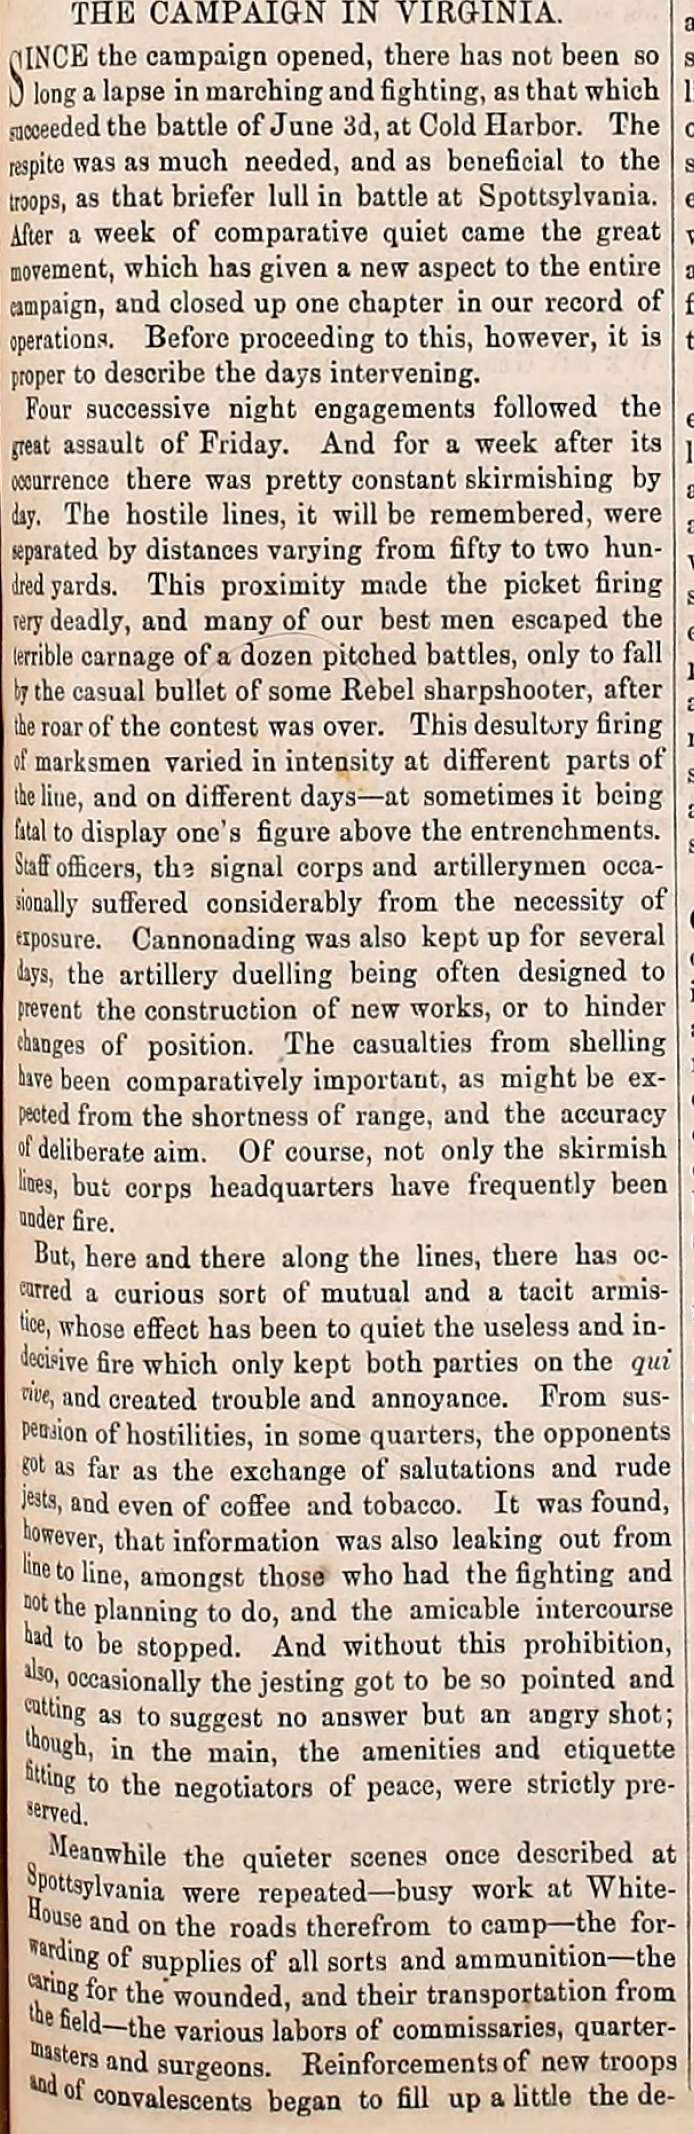 Army Navy Journal article on the progress of the Virginia Campaign